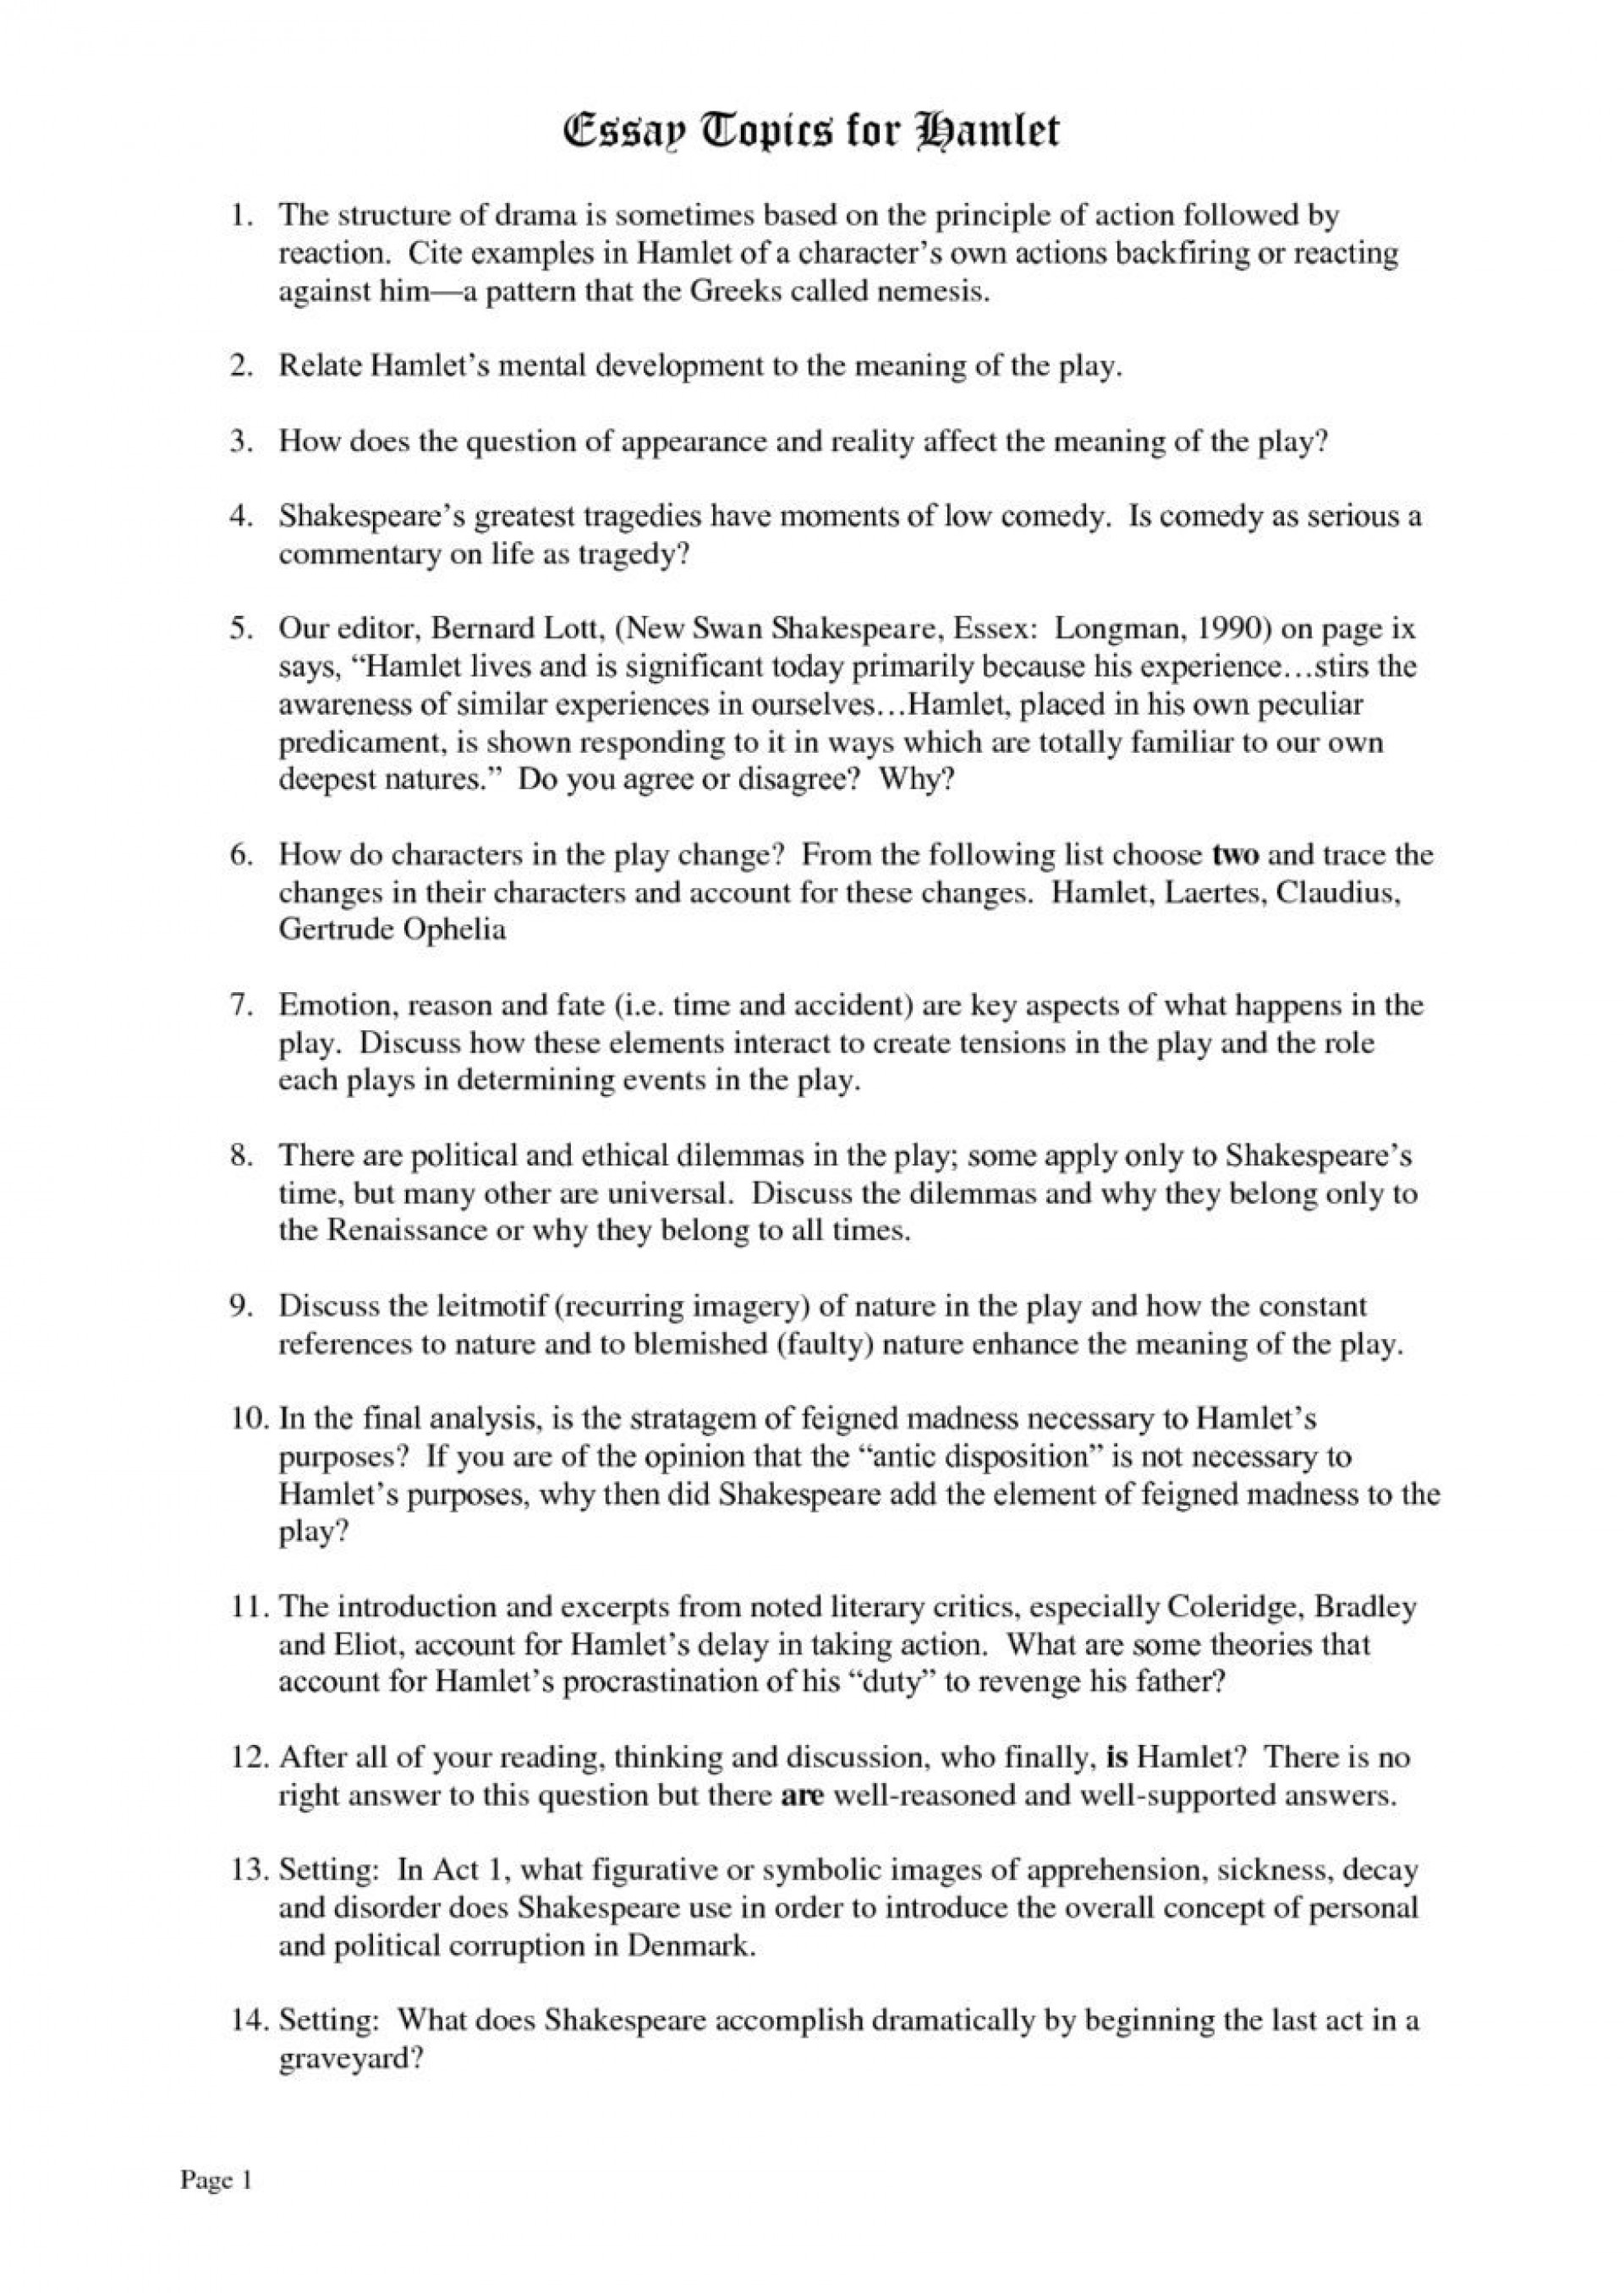 015 Uw Essay Prompt Prompts Questions For Macbeth College Structure Usc Honors 936x1322 Fascinating La Crosse University Of Wisconsin 2019 Bothell 1920